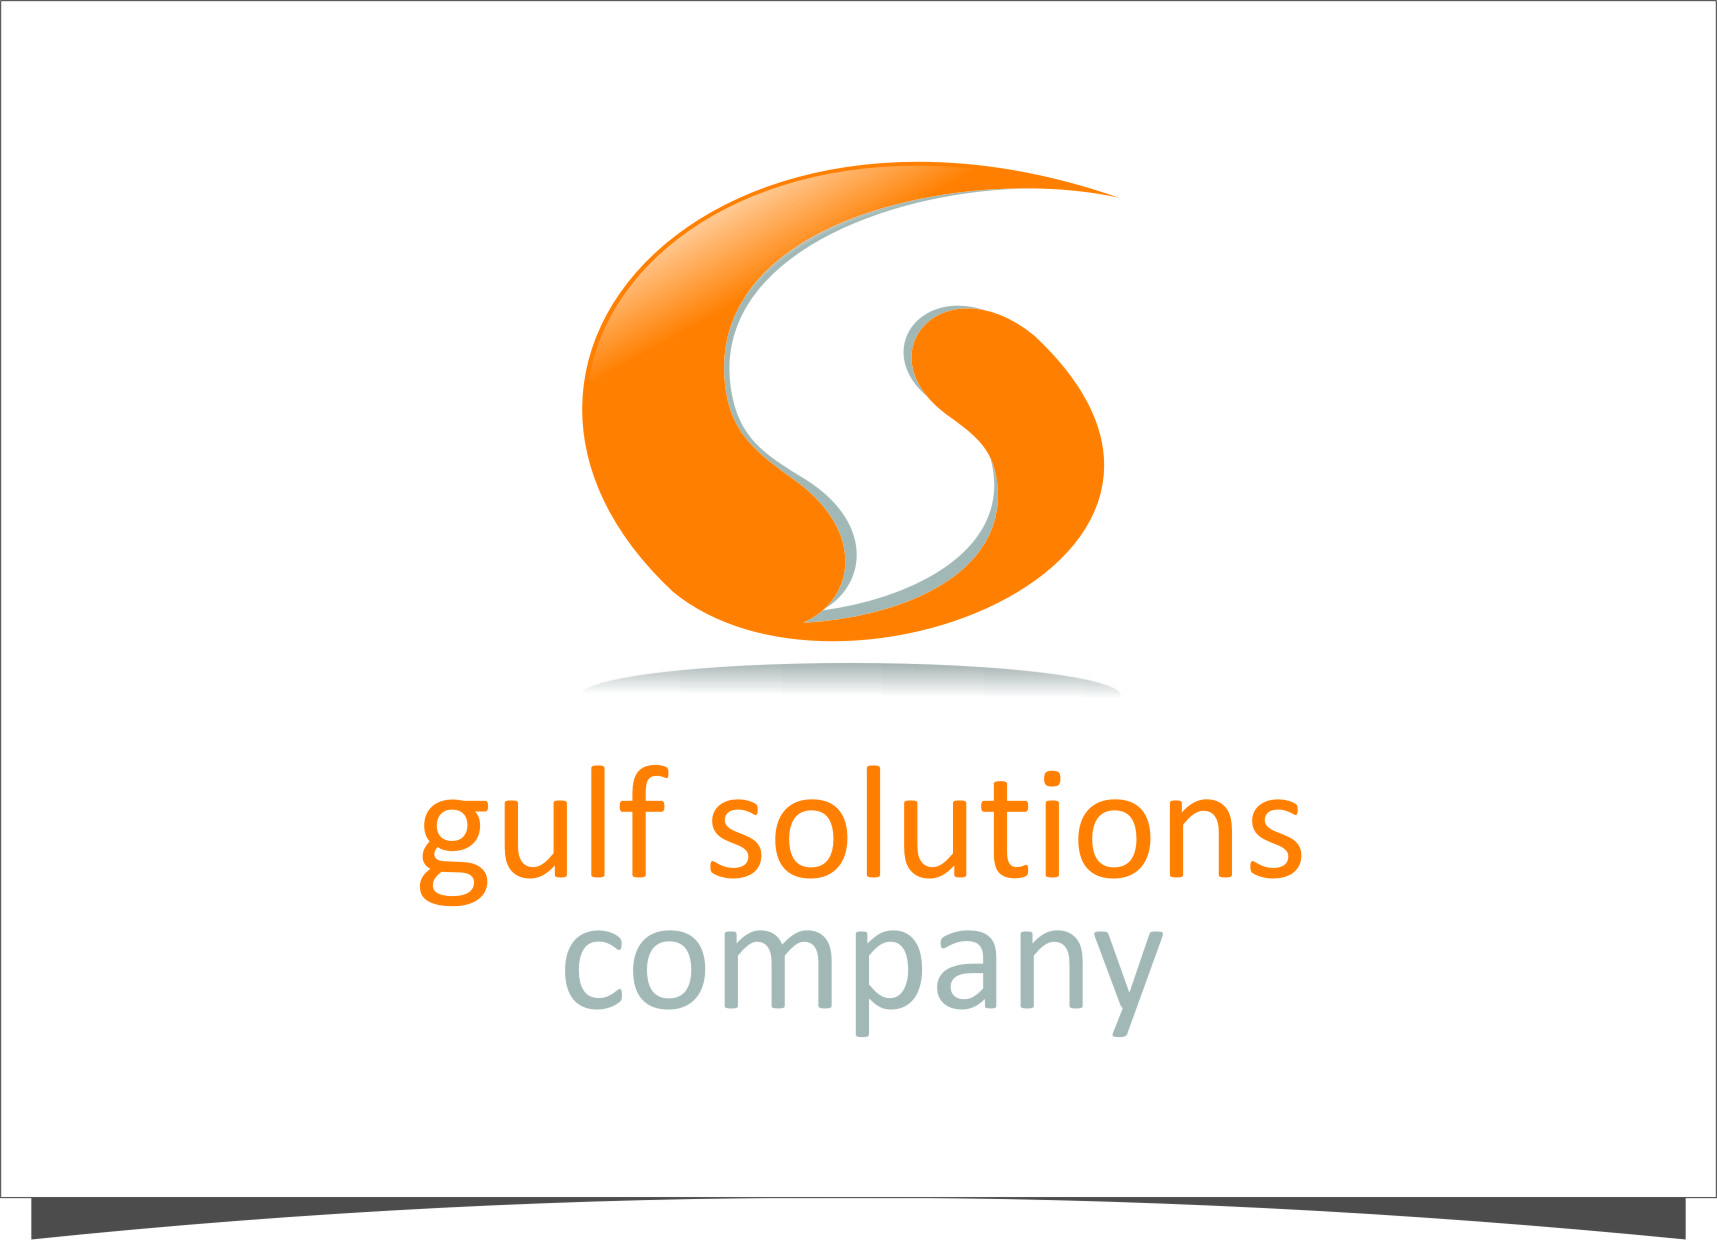 Logo Design by Ngepet_art - Entry No. 98 in the Logo Design Contest New Logo Design for Gulf solutions company.